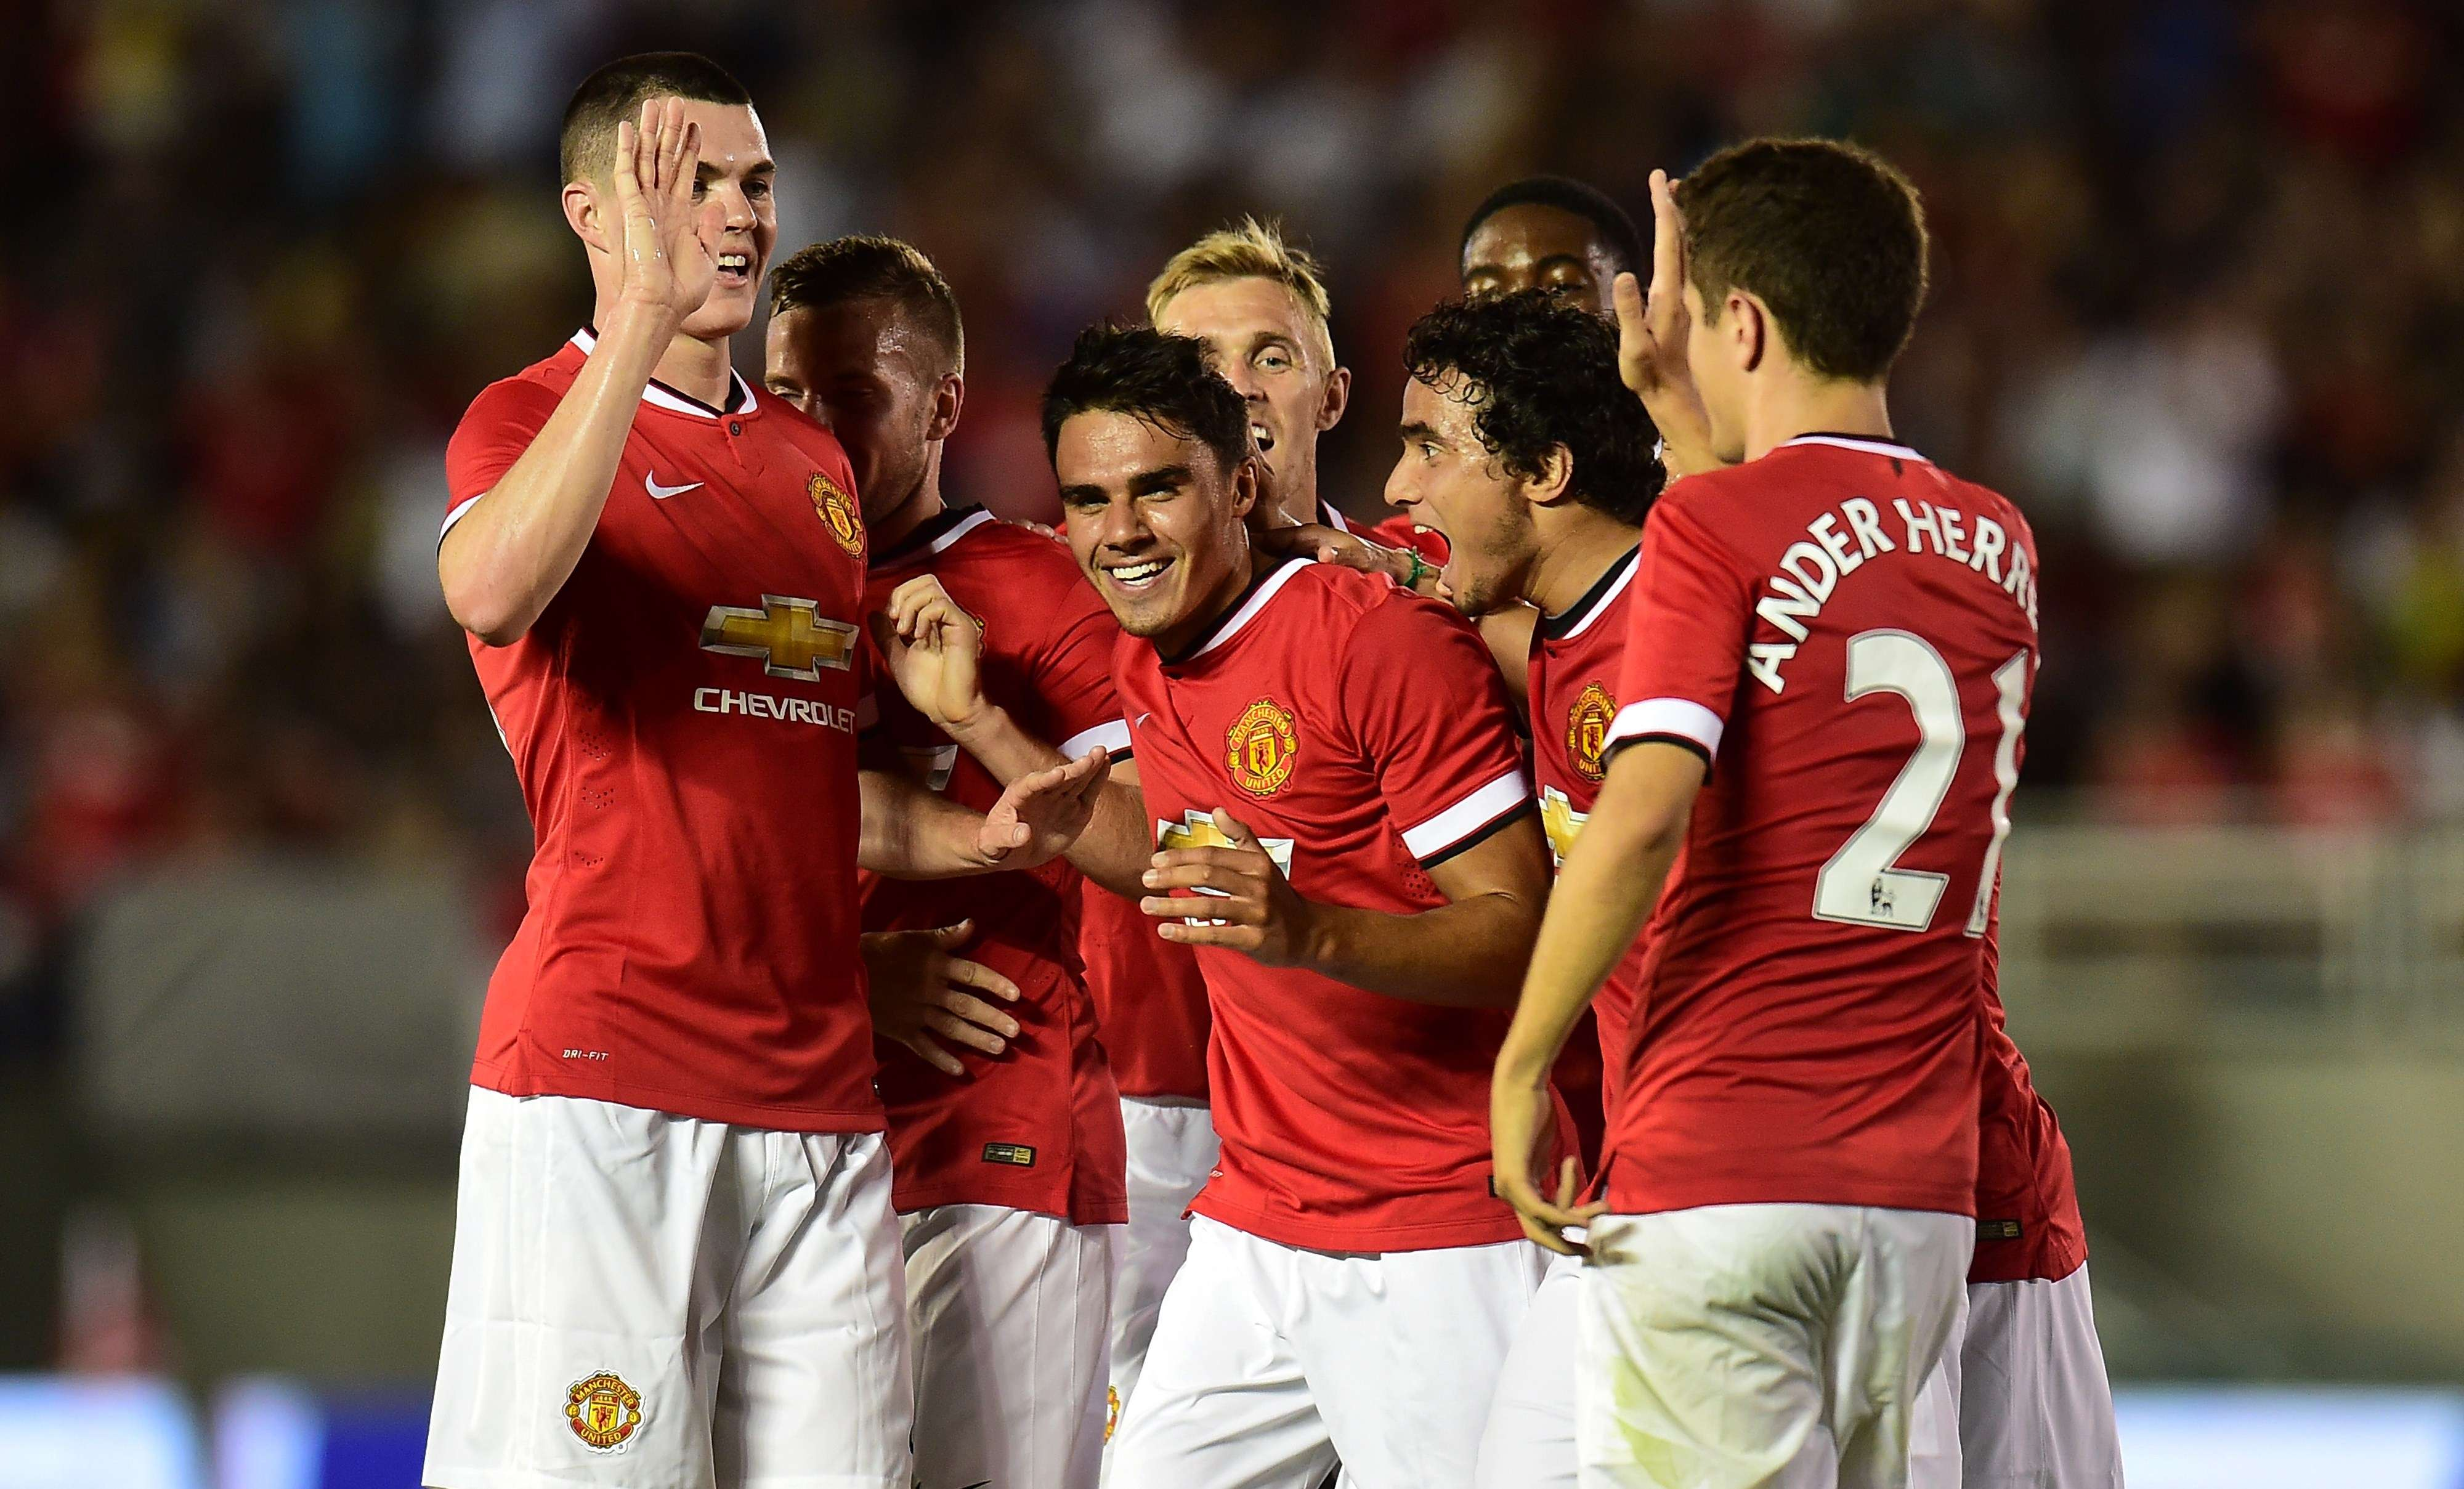 Man U crushes Galaxy in van Gaal debut